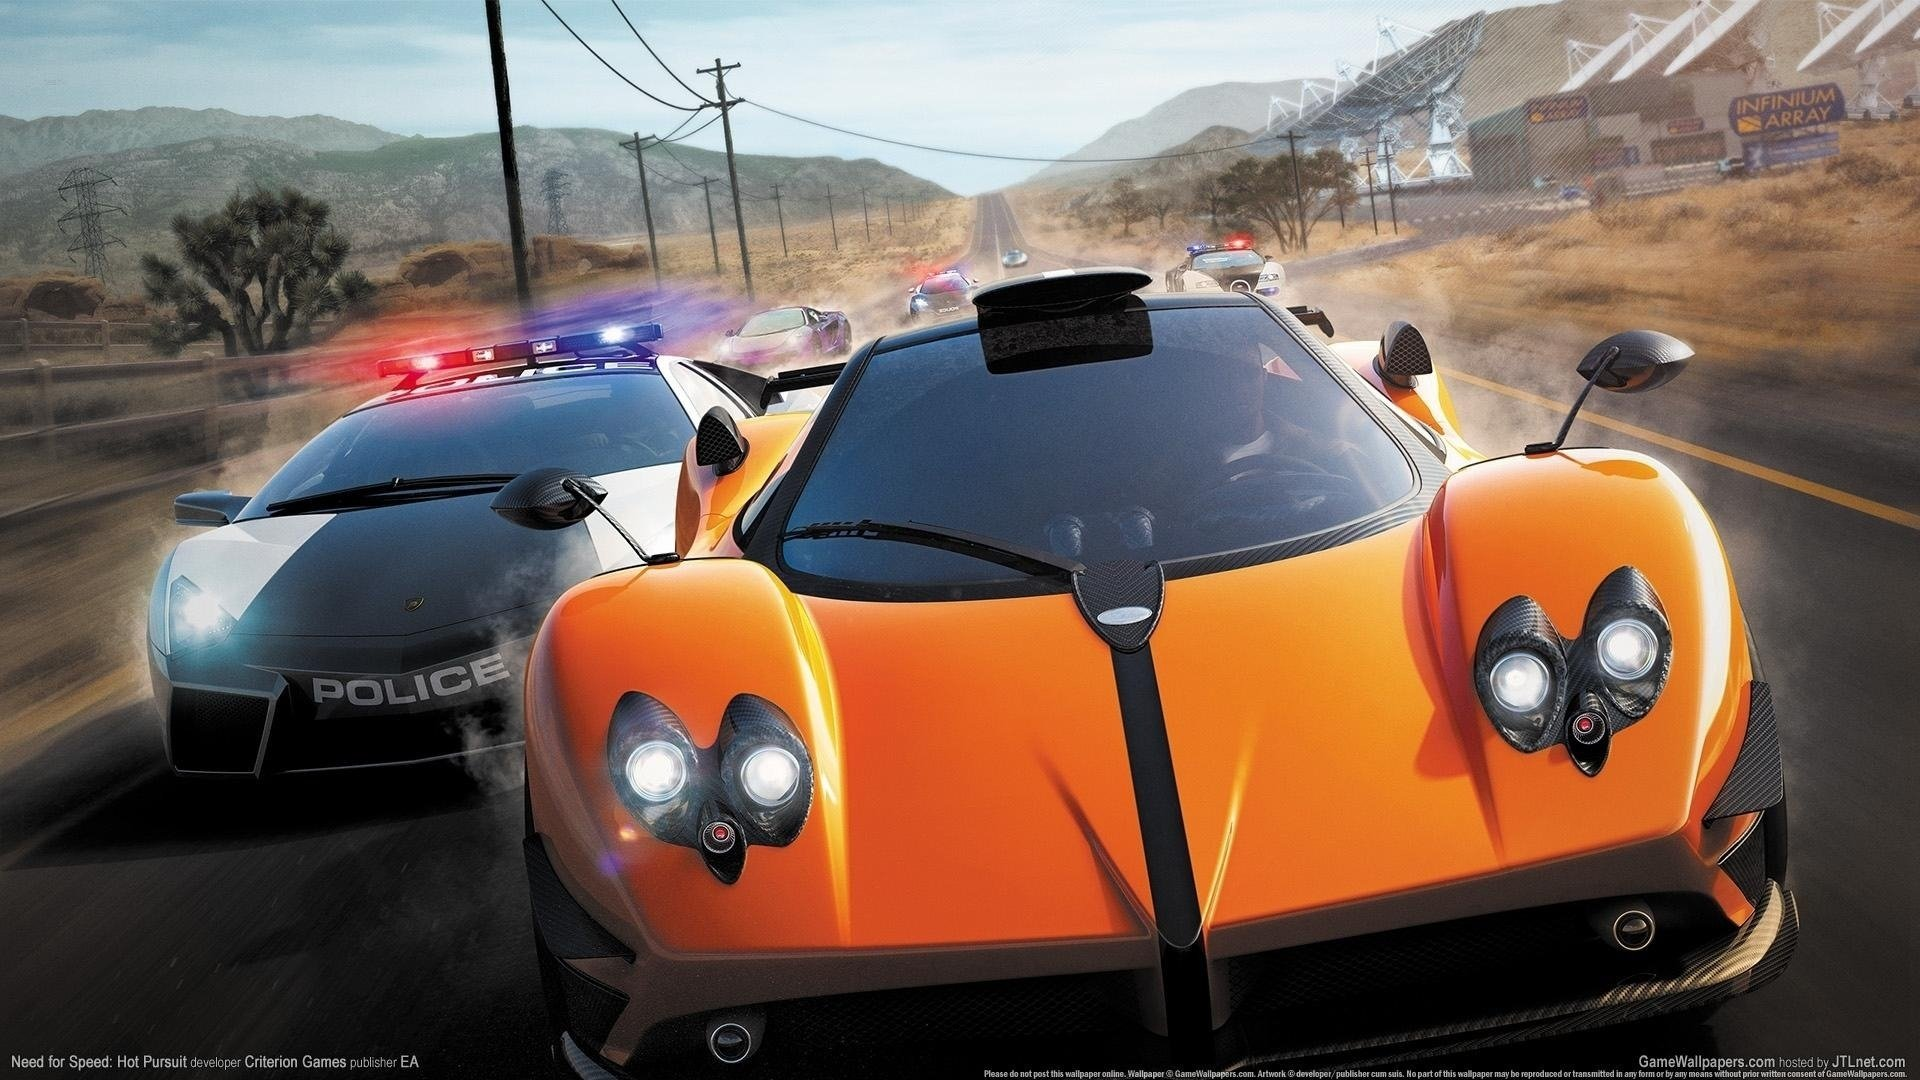 need for speed hot pursuit 2 wallpaper